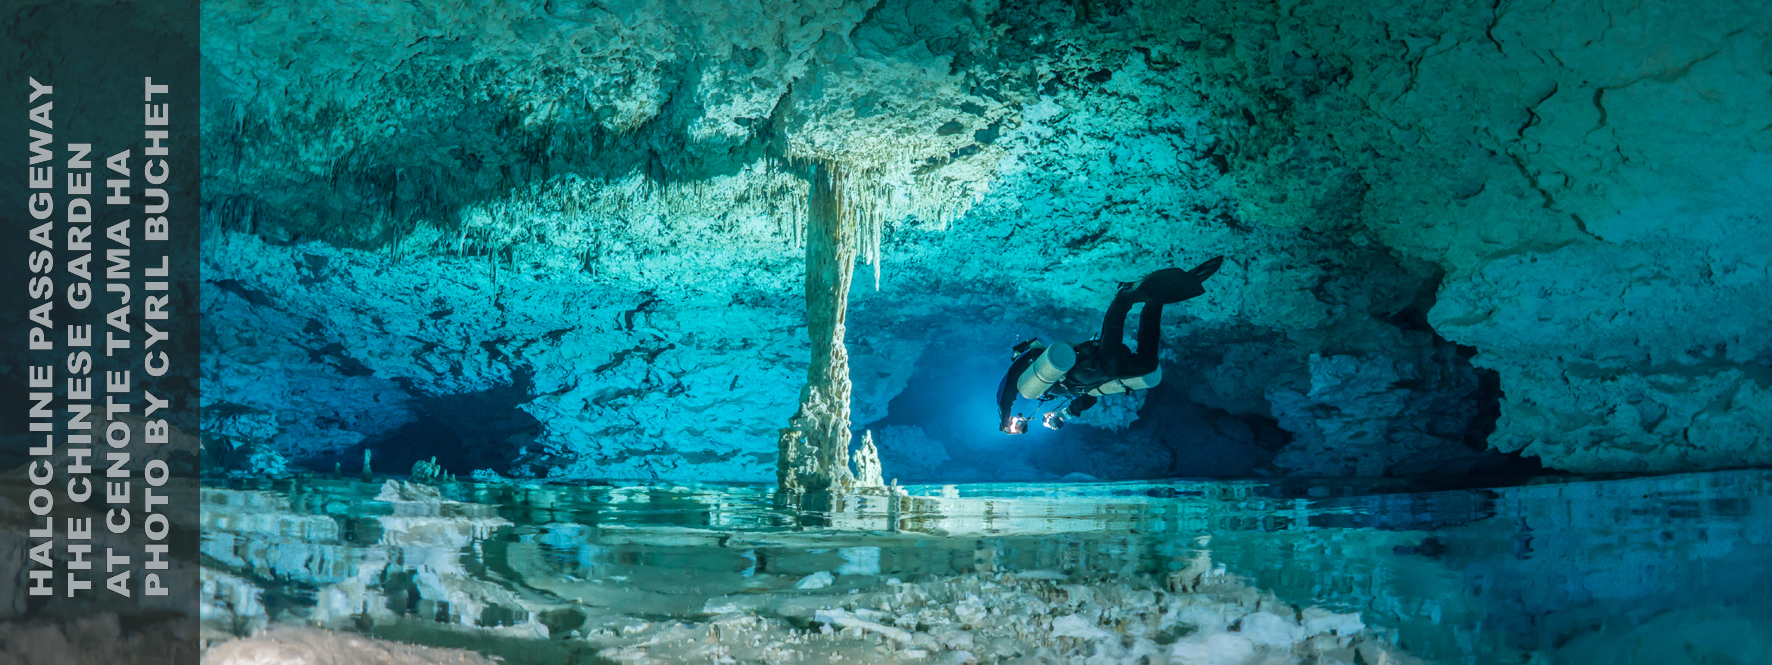 Cave Halocline, Halocline Photos, Under the Jungle, Tajma Ha Cenote, Taj Mahal Cenote, Cyril Buchet Photo